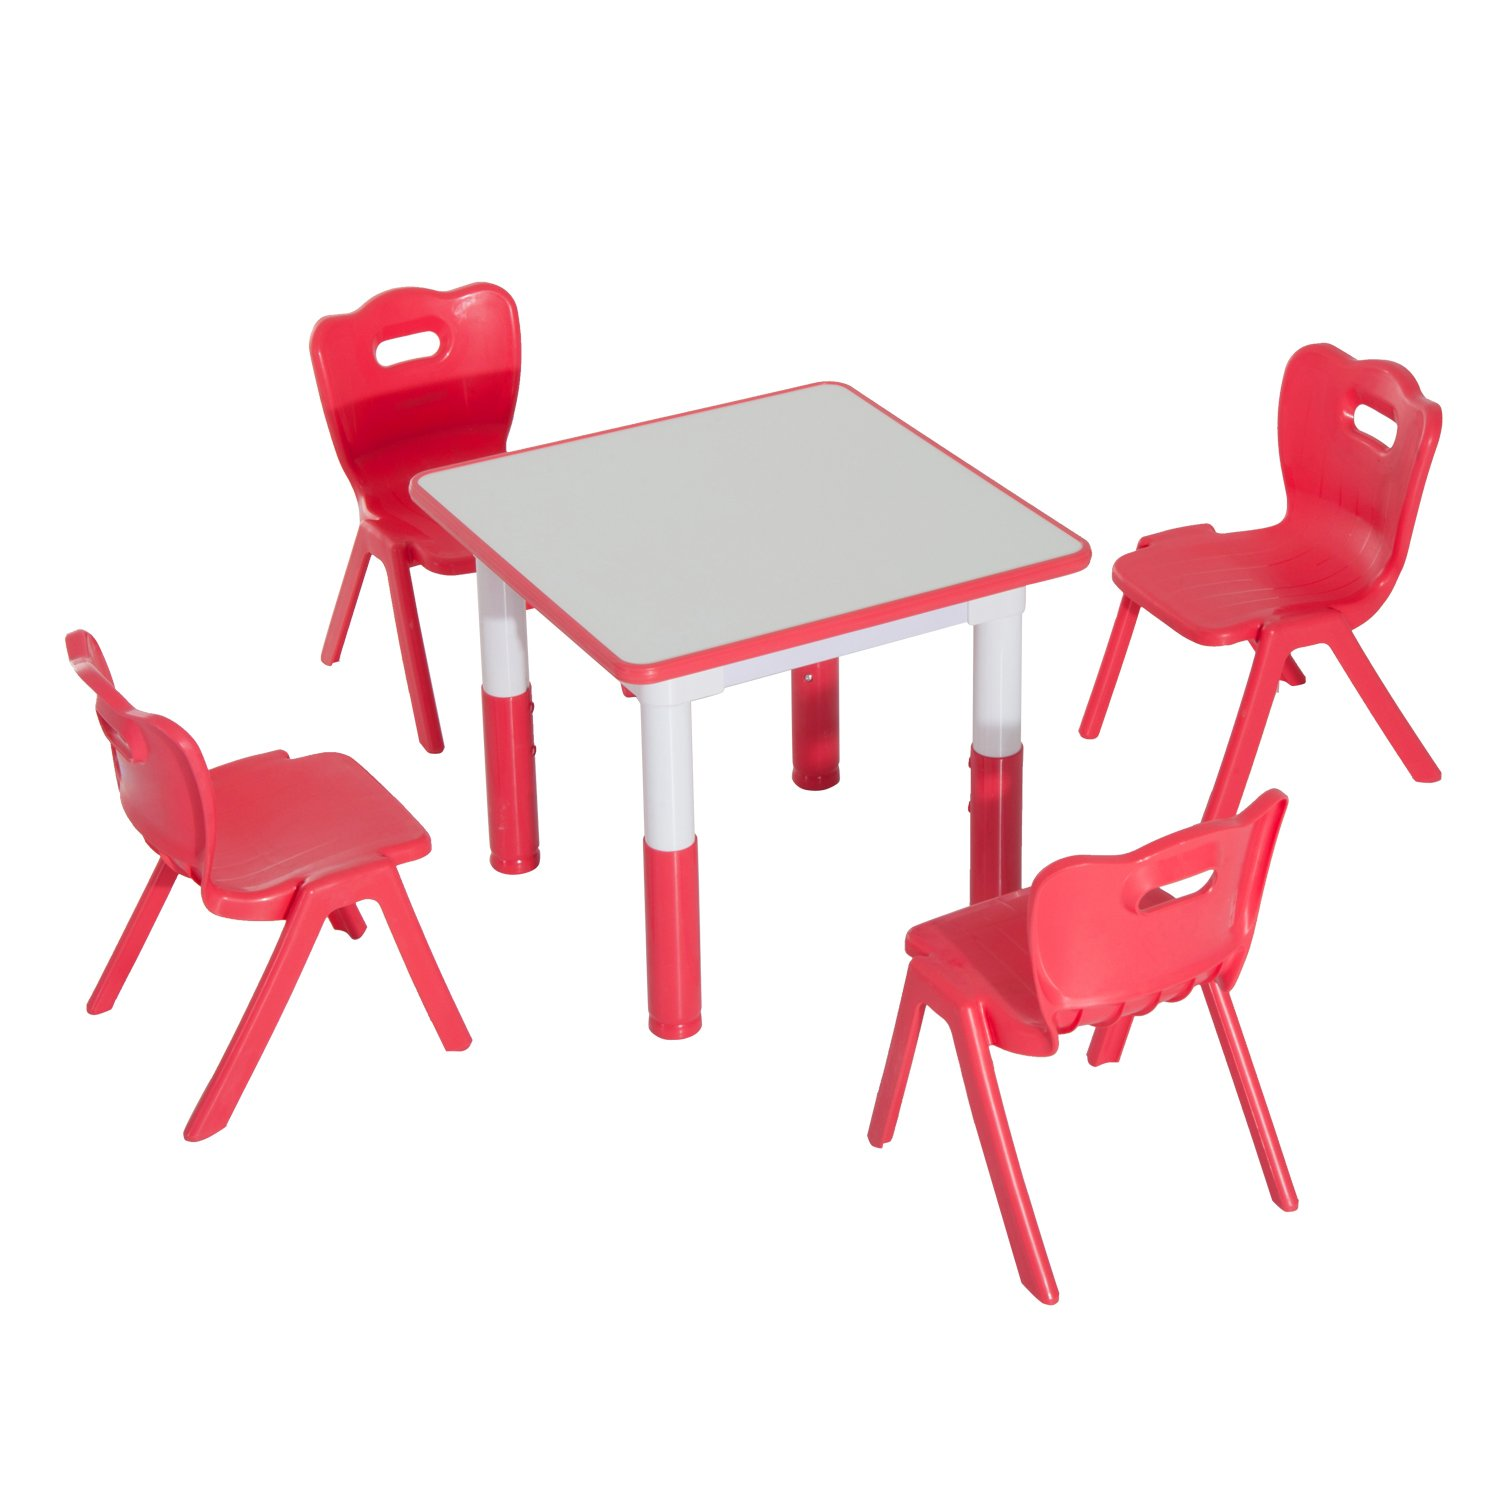 Qaba 5 Piece Kids Learning Activity Table and Chair Set - Red